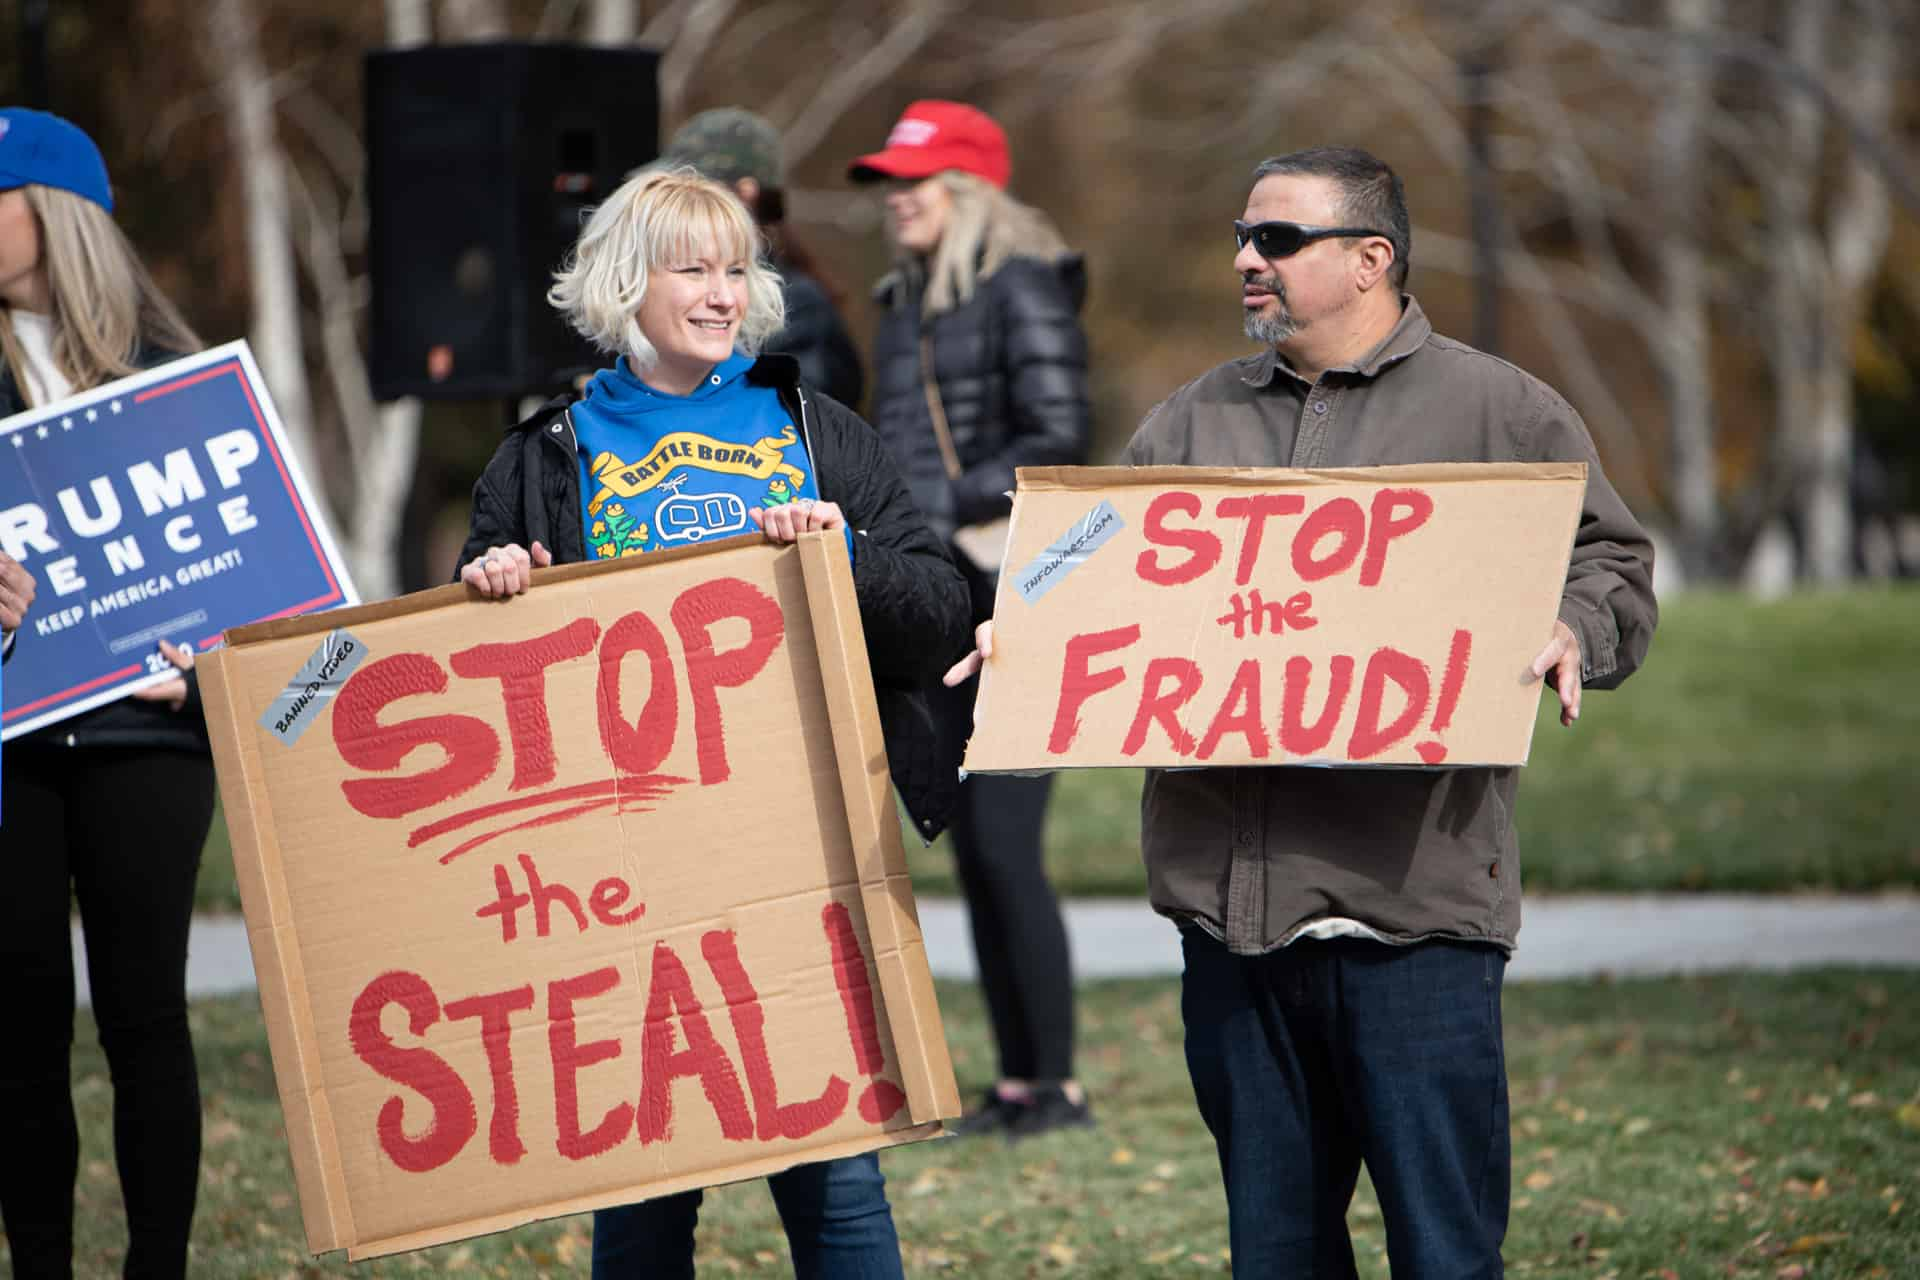 Protestors with Stop the Steal sign